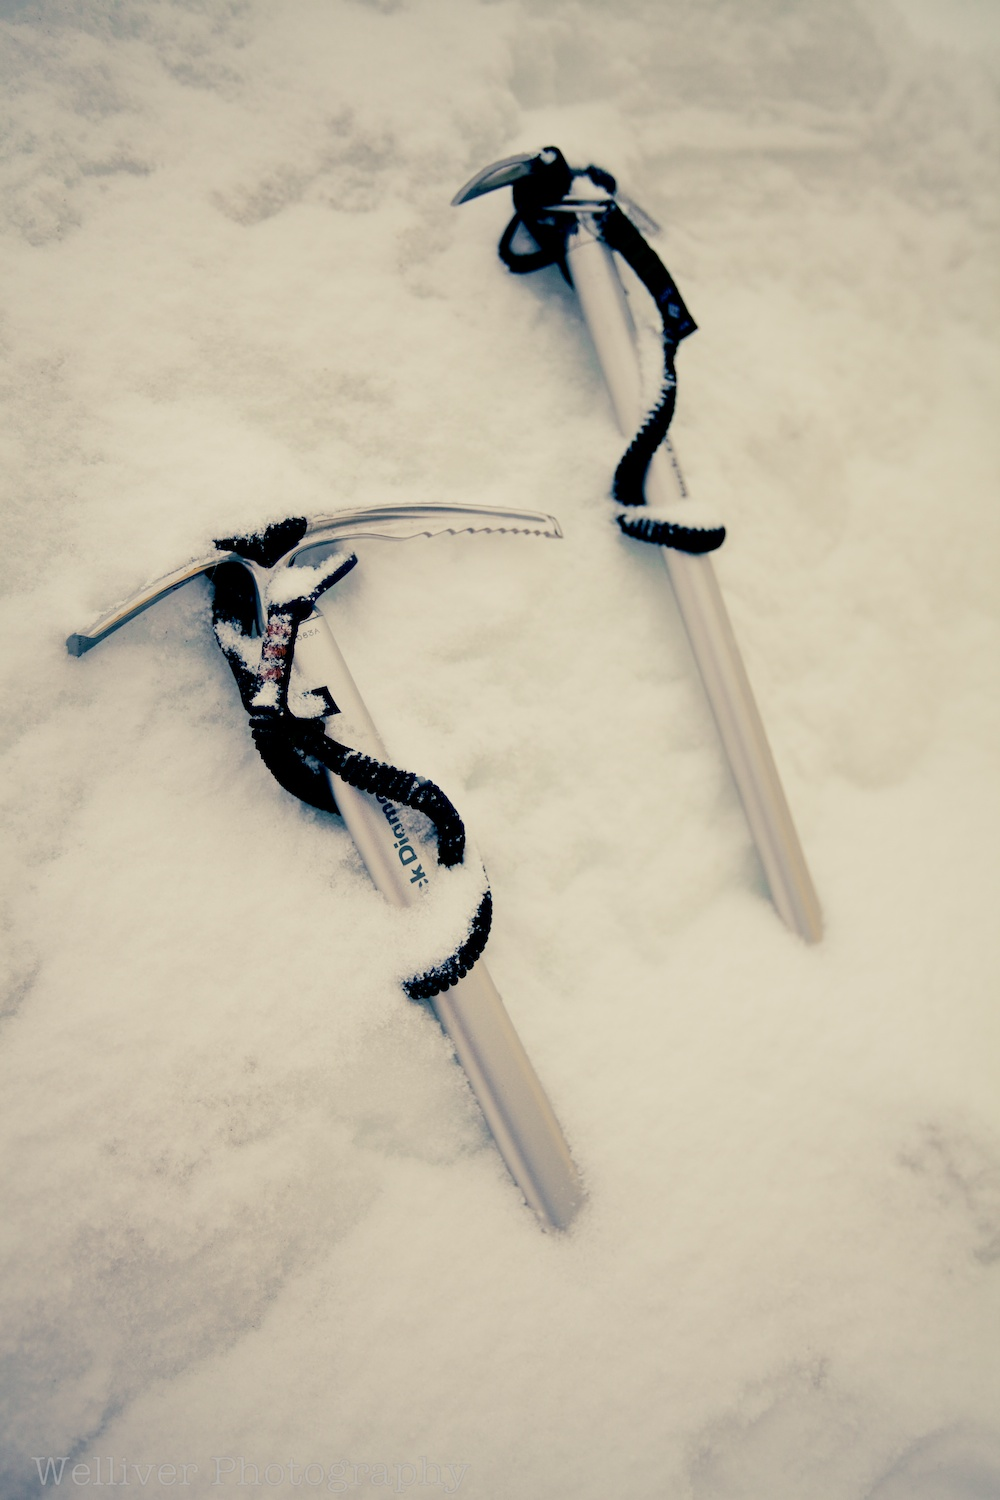 Ice axes are handy for sinking tent anchors in the snow.